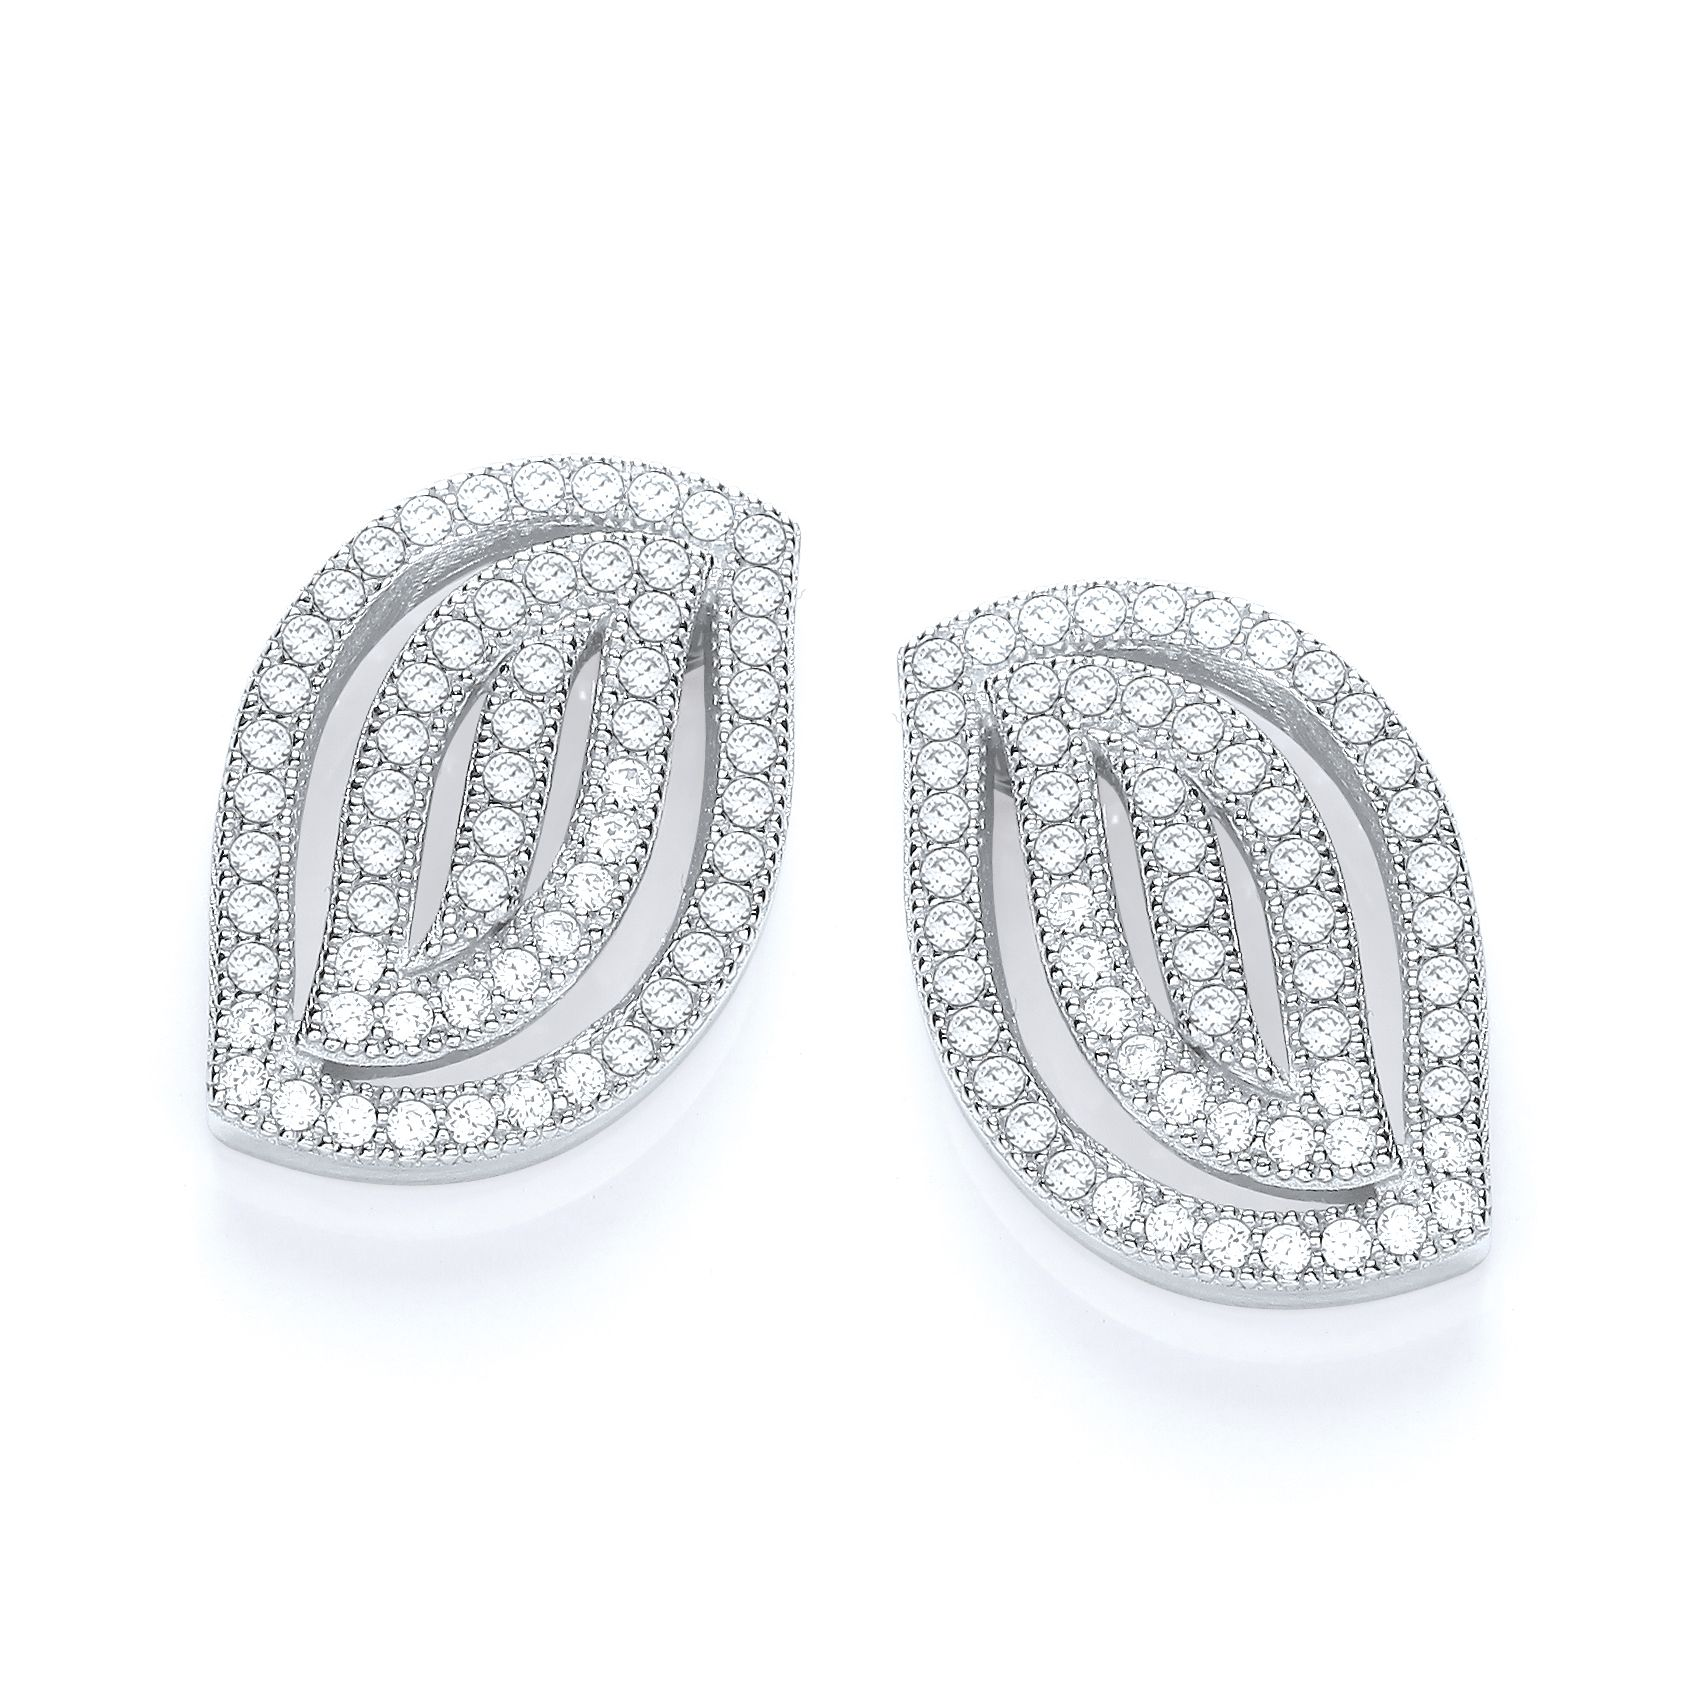 d574ab610 ... Sterling Silver Micro Pave Cubic Zirconia Leaf stud earrings variant  attributes variant attributes variant attributes. Brand: J-Jaz